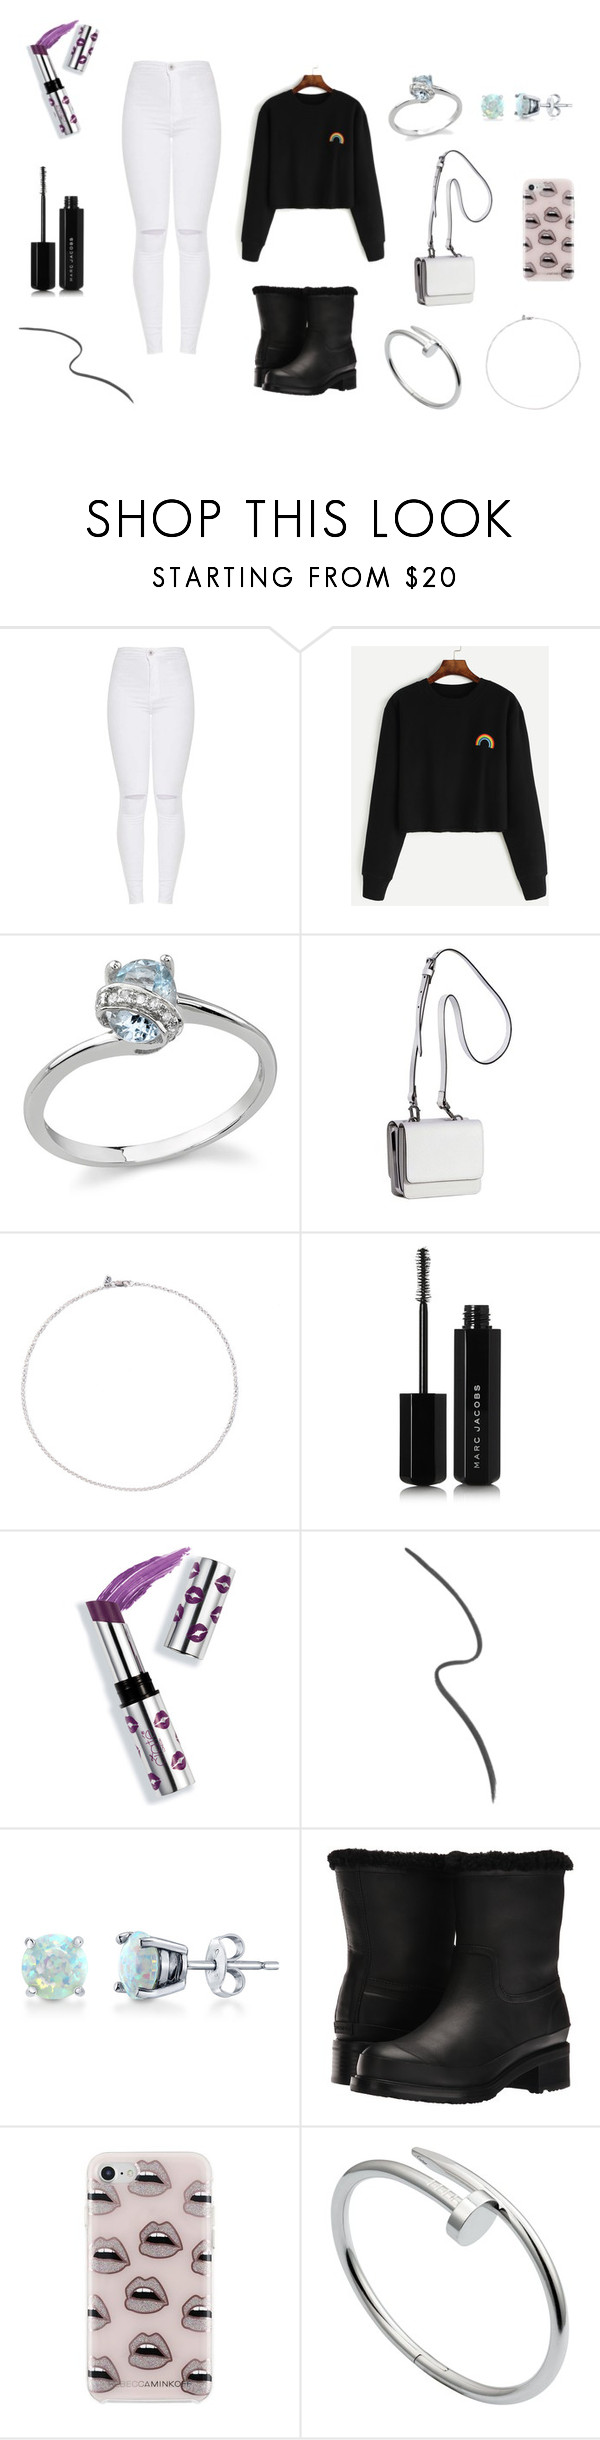 """""""Outfit ♡"""" by aincompleta on Polyvore featuring moda, WithChic, Kendall + Kylie, Marc Jacobs, Ciaté, Gucci, BERRICLE, Hunter, Rebecca Minkoff e Cartier"""